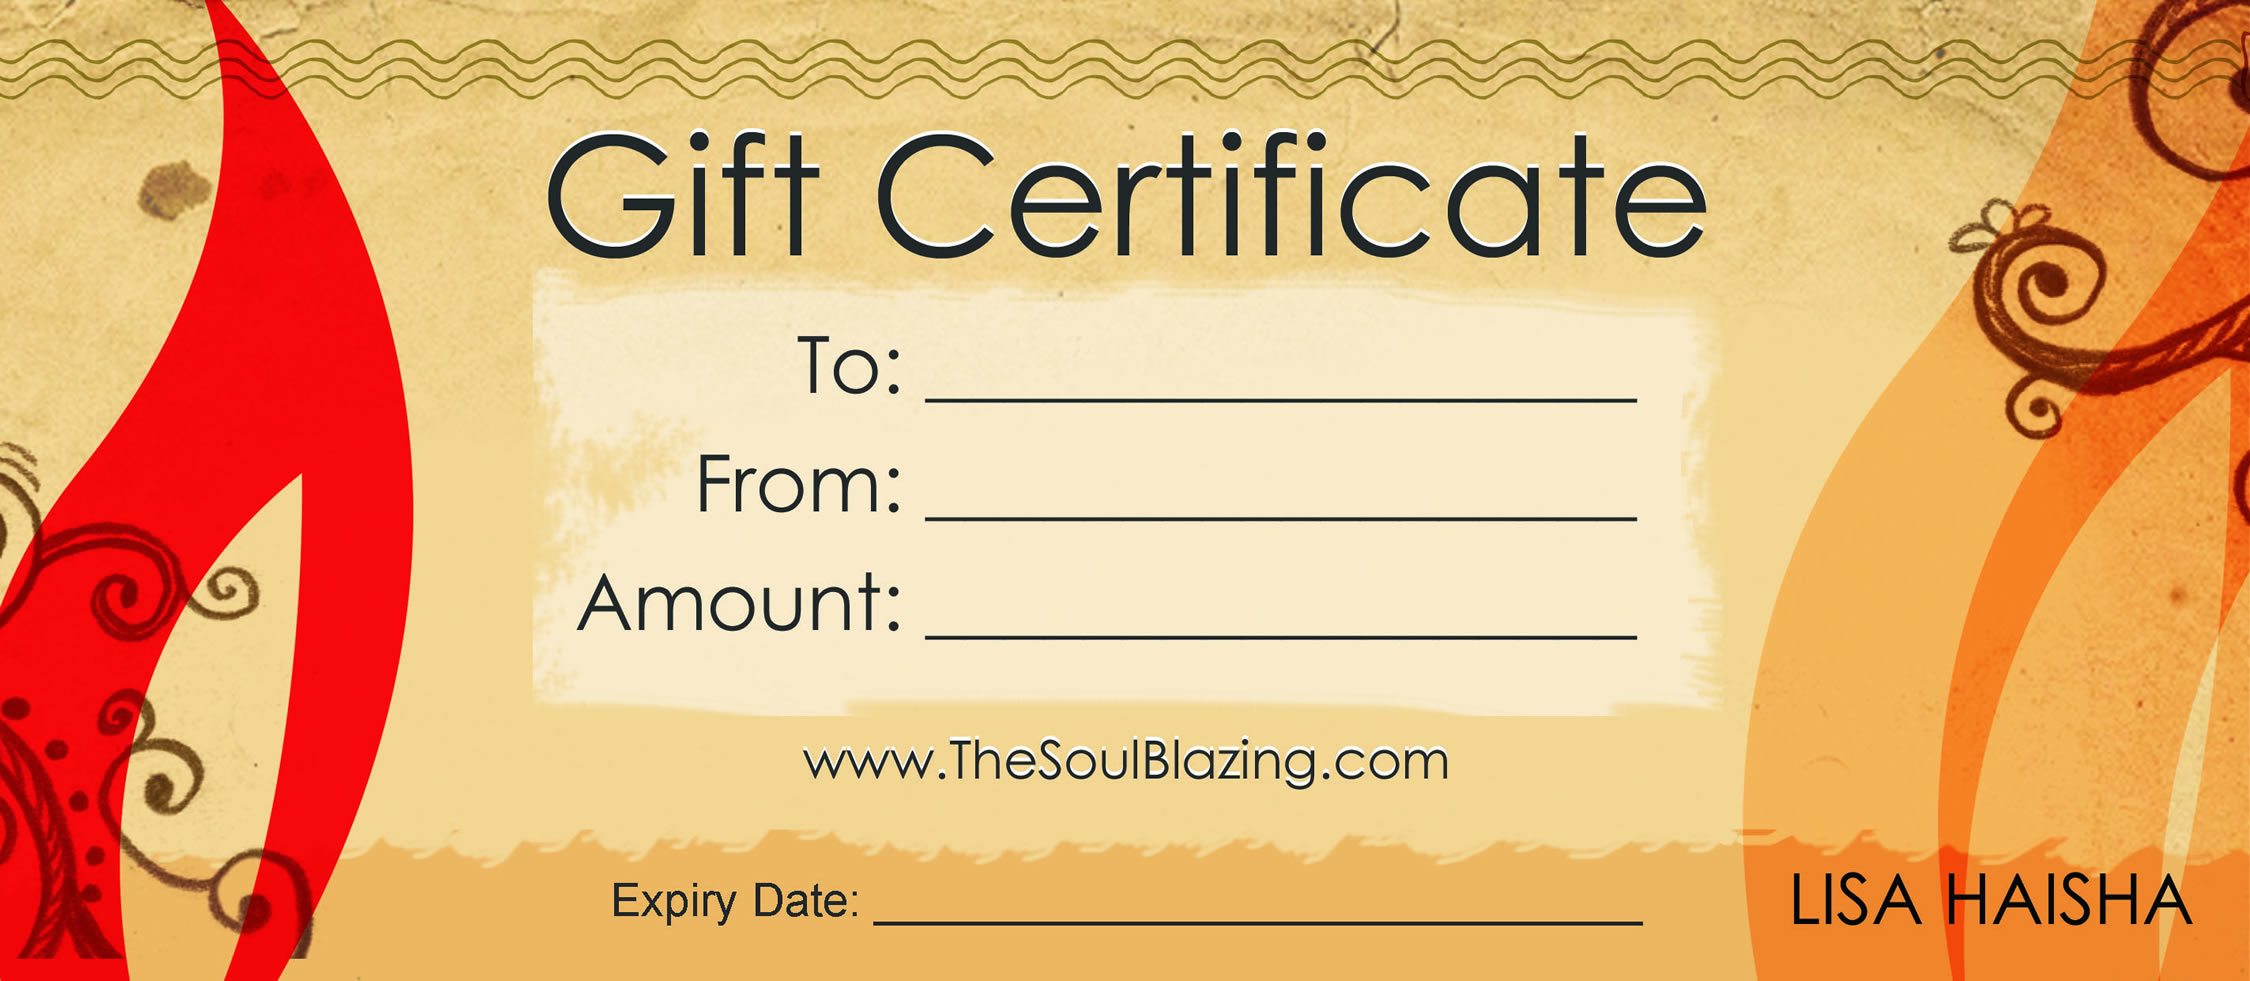 restaurant gift certificates printing